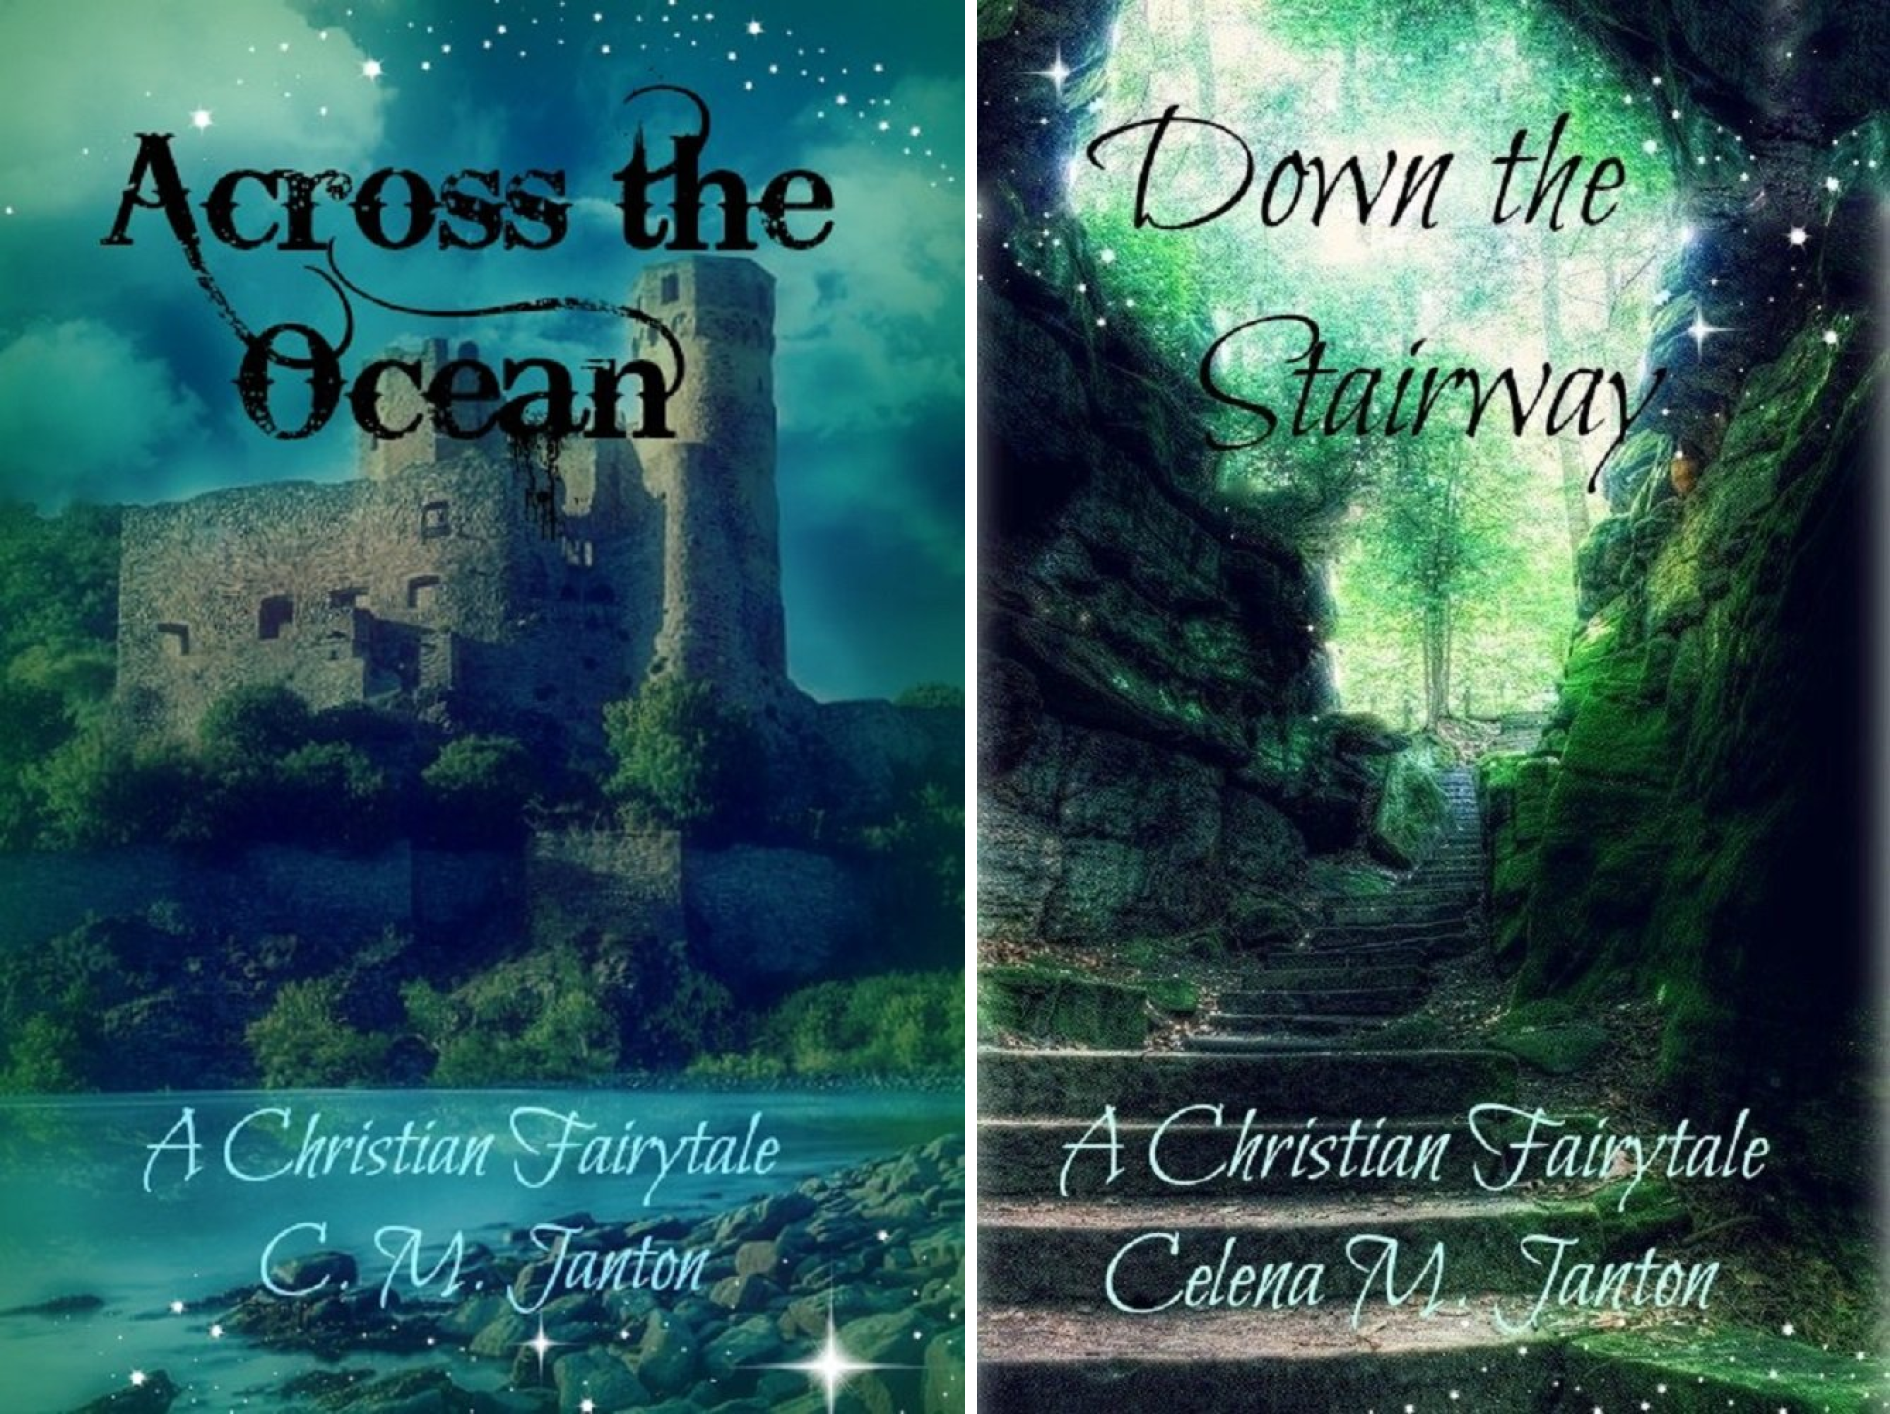 A Christian Fairytale (2 Book Series)